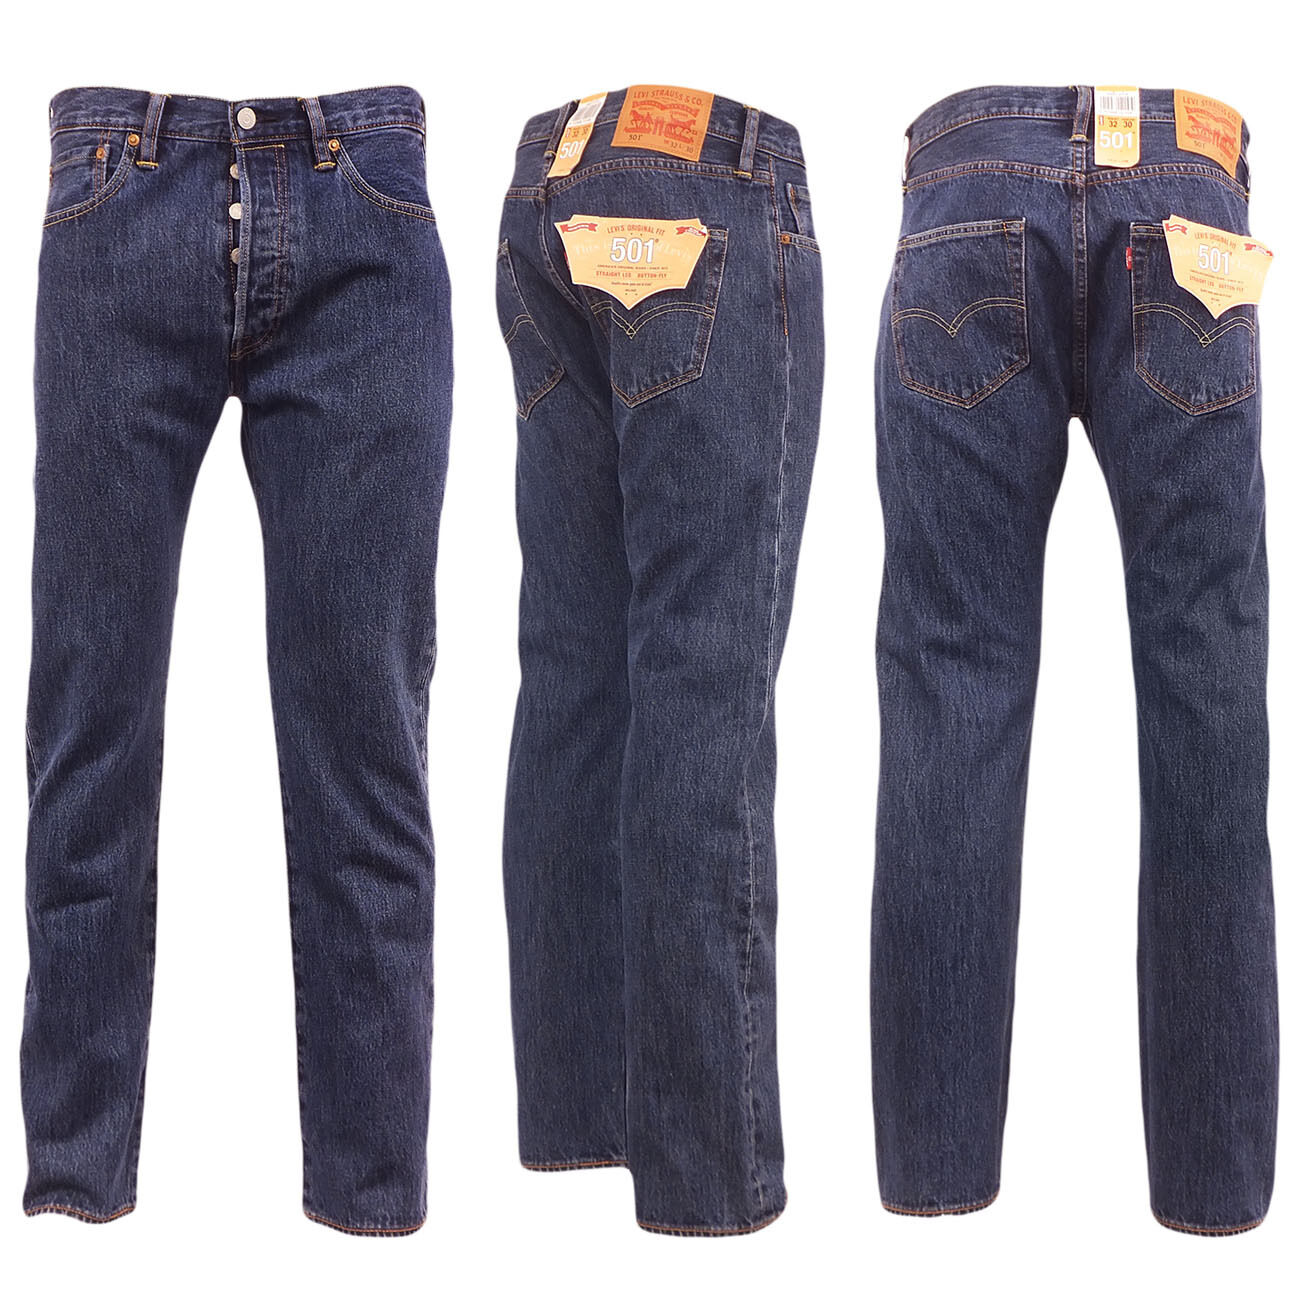 LEVIS 501 MENS Jeans Brand New Button Fly Denim Jean 28 30 ... - photo #36